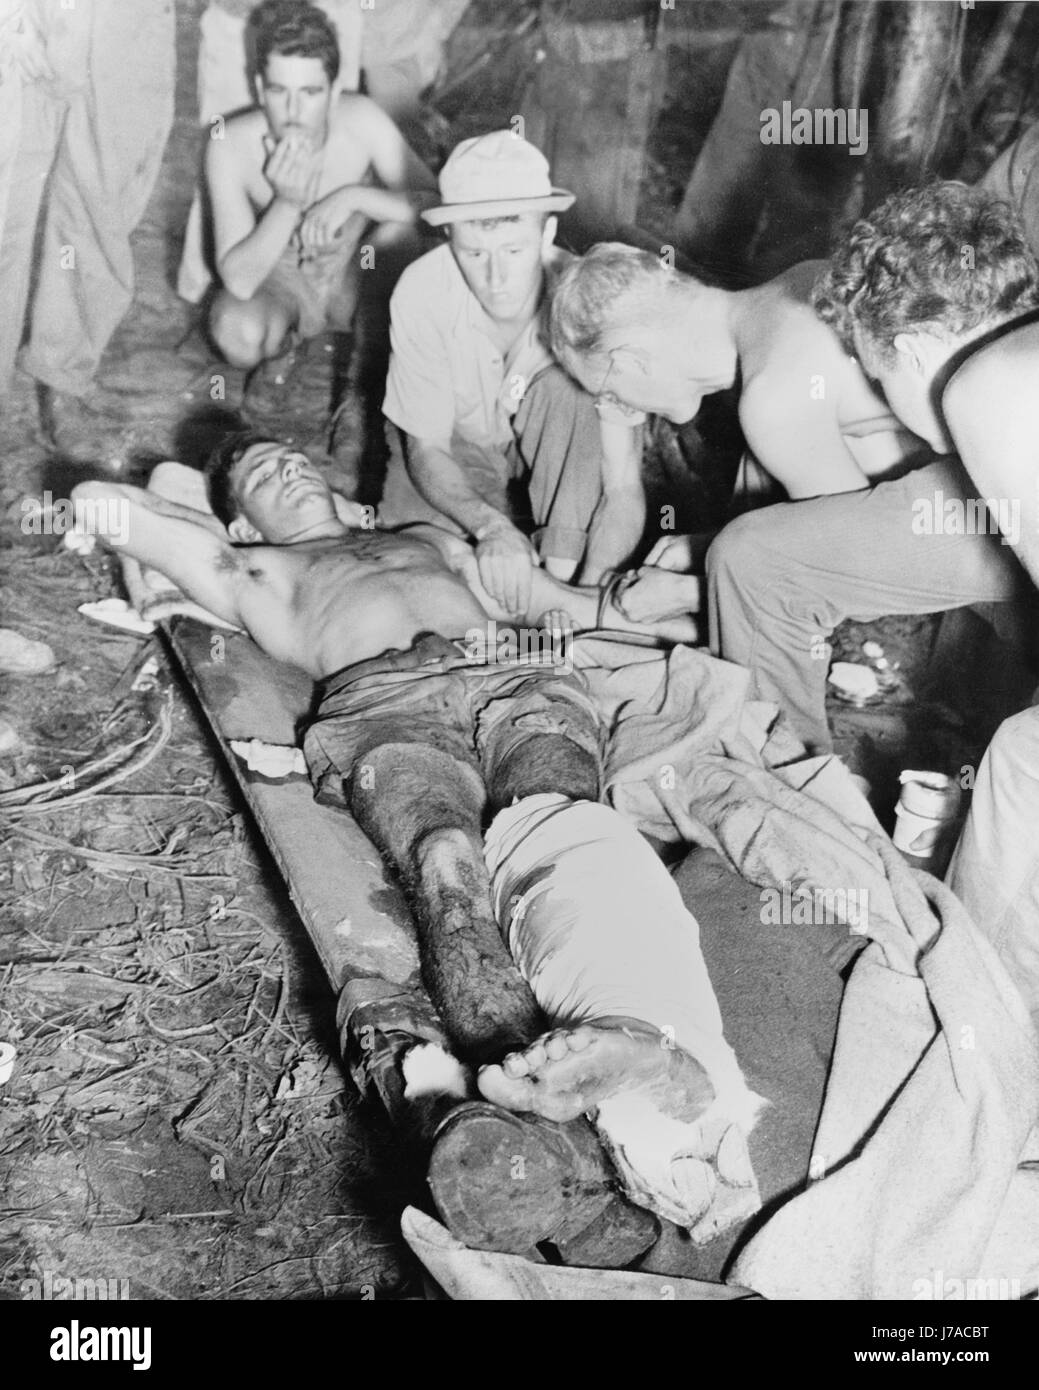 A wounded American soldier gets a blood transfusion, New Guinea, circa 1942-1945. - Stock Image